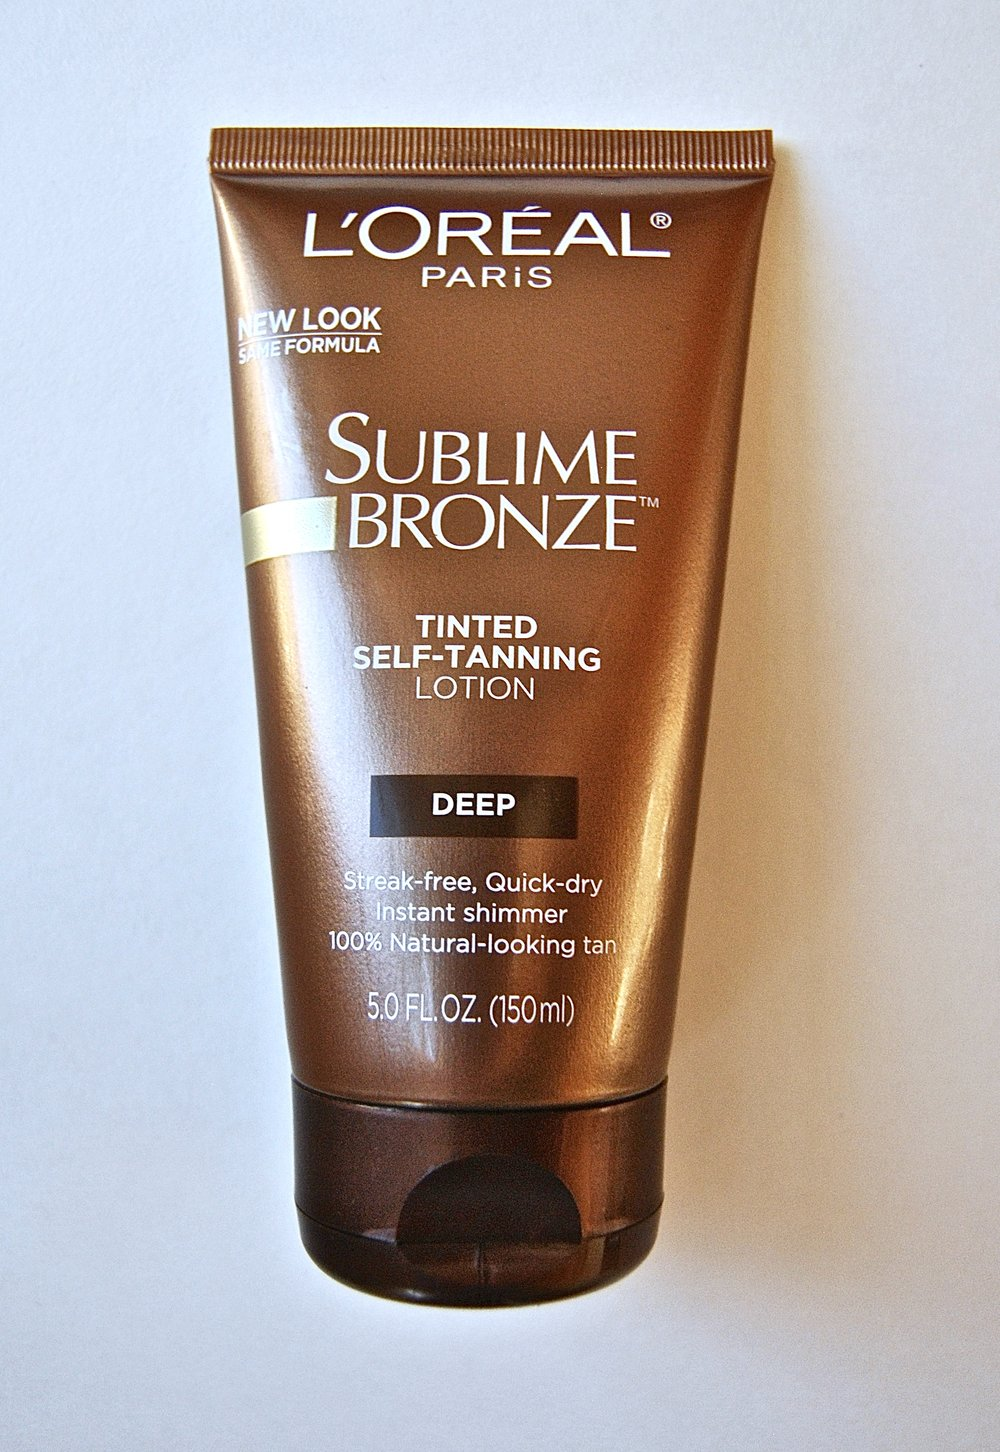 L'Oreal®Sublime Bronze™Tinted Self-Tanning Lotion, 5 oz. - WalMart : $8.47Target : $9.49Ulta : $11.99